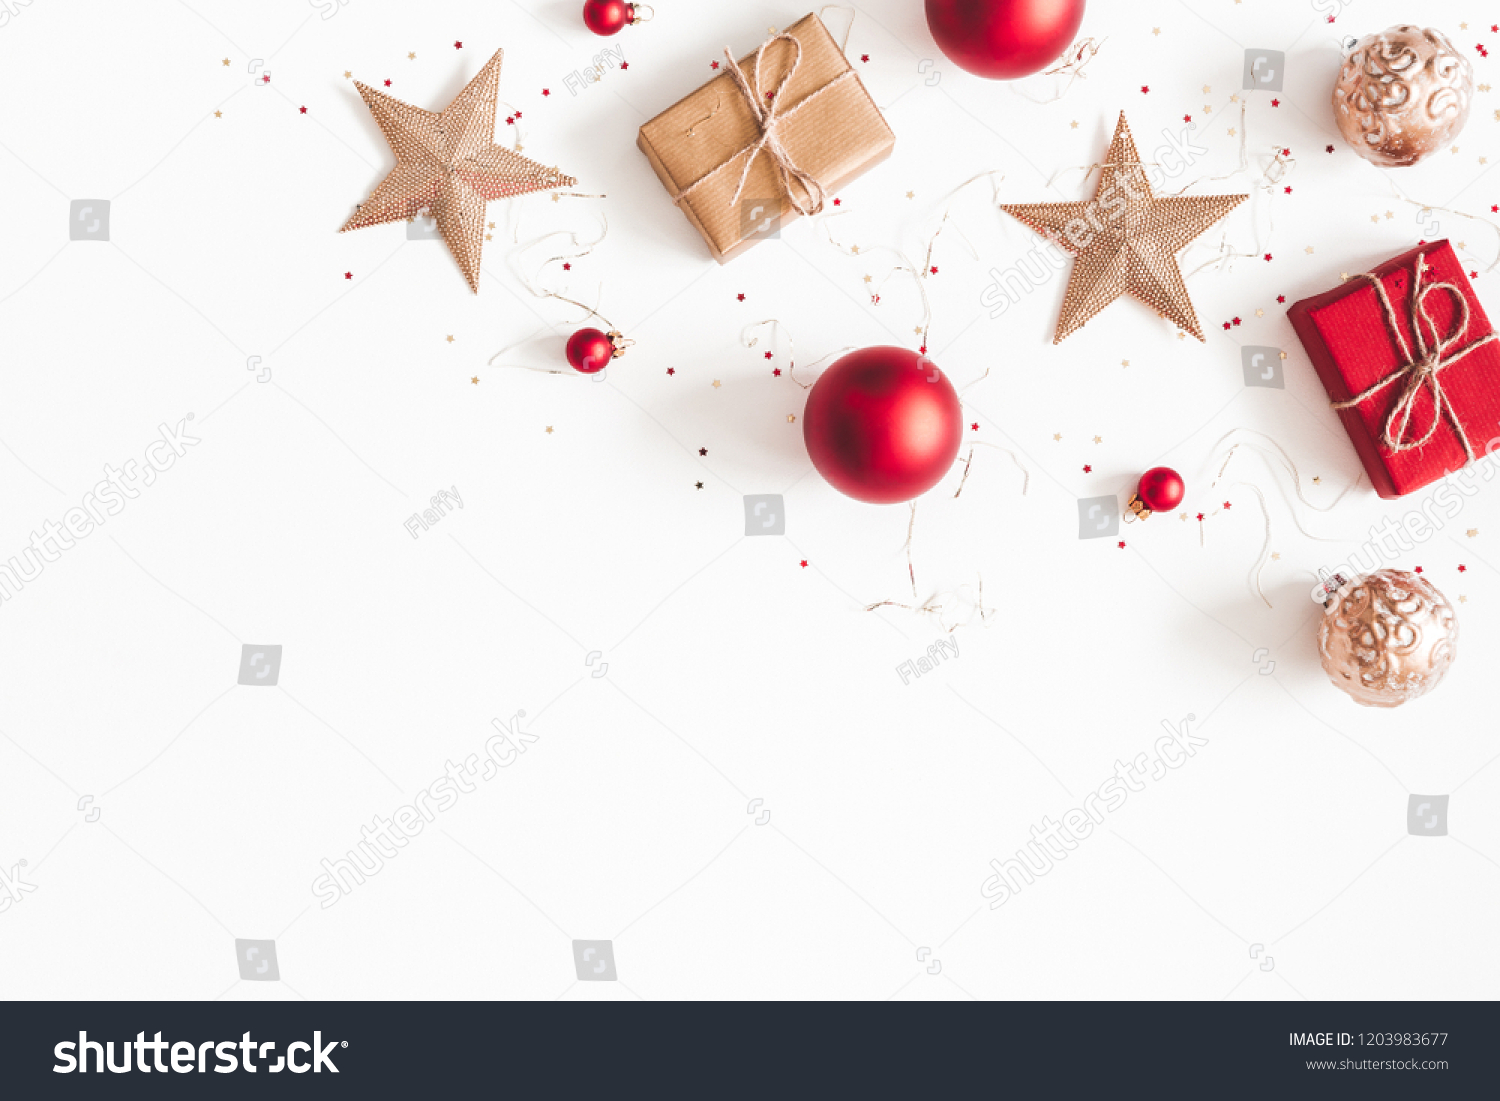 Christmas composition. Christmas gifts, red and golden decorations on white background. Flat lay, top view, copy space #1203983677